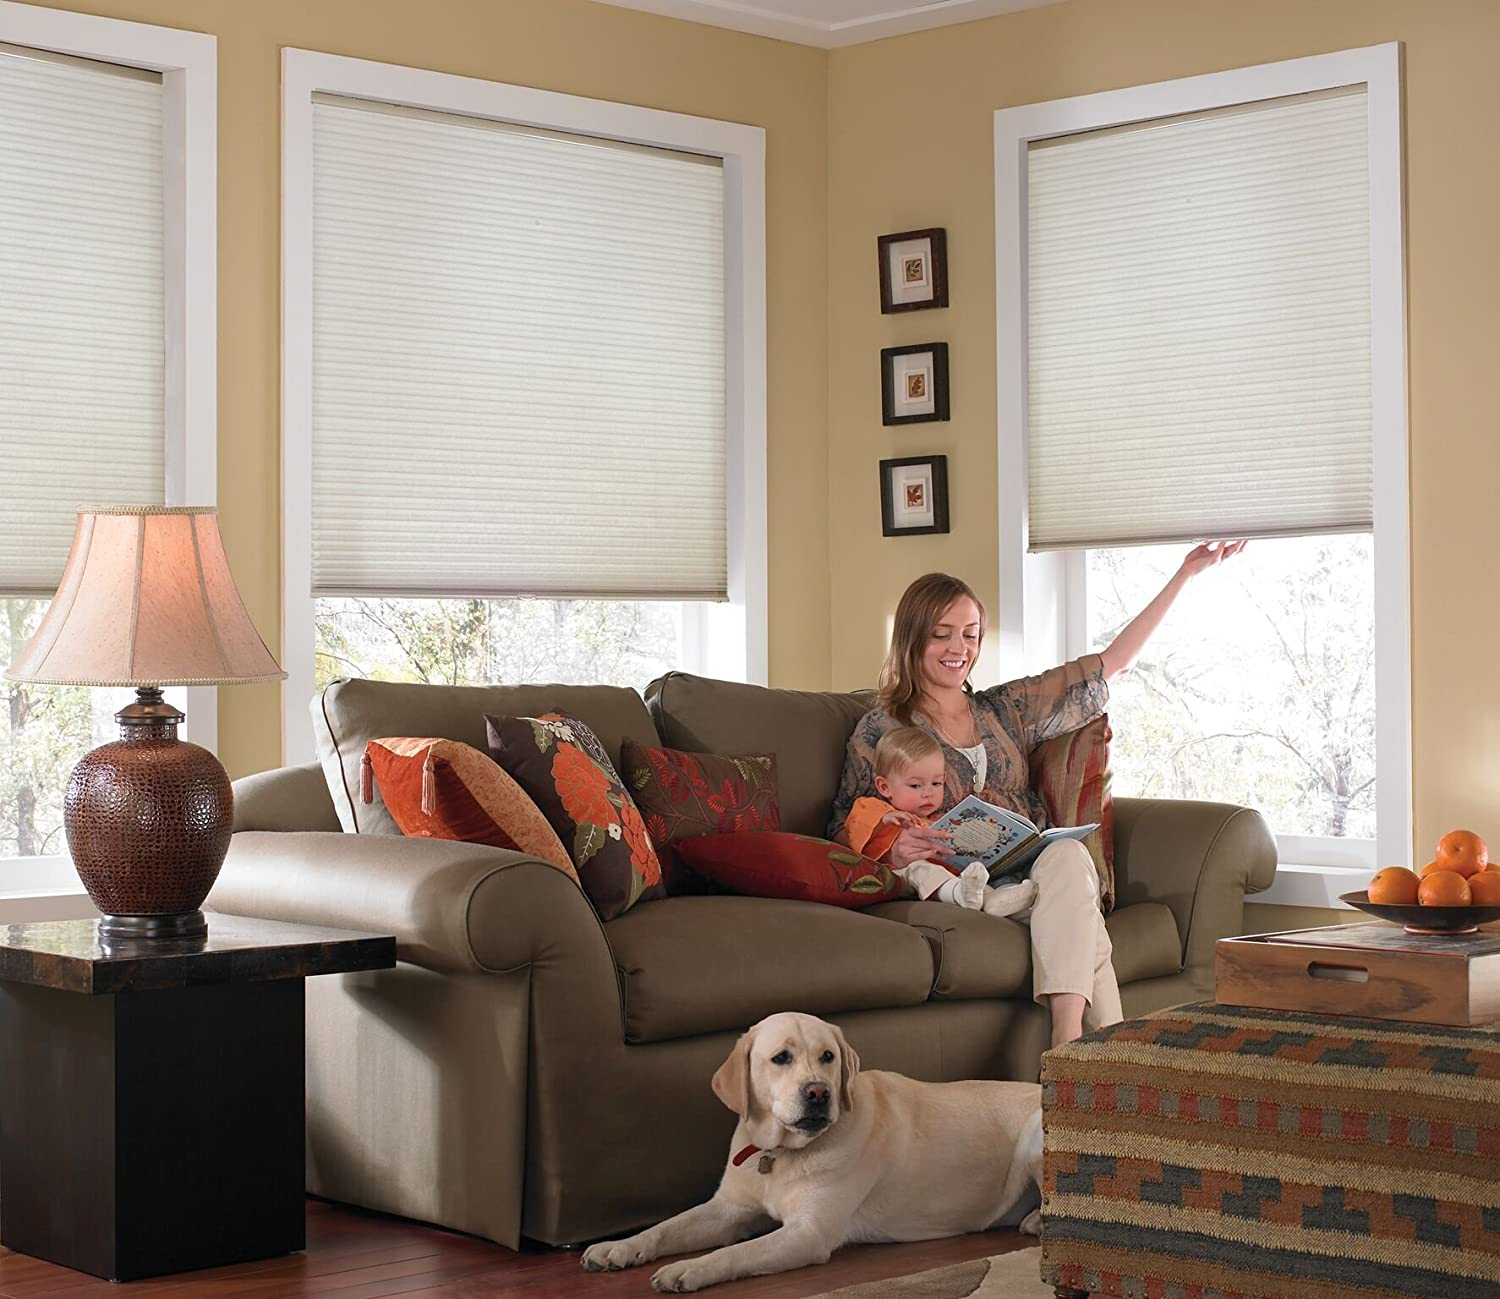 Windowsandgarden Custom Cordless Single Cell Shades, 24W x 37H, Cool White, Light Filtering 21-72 Inches Wide